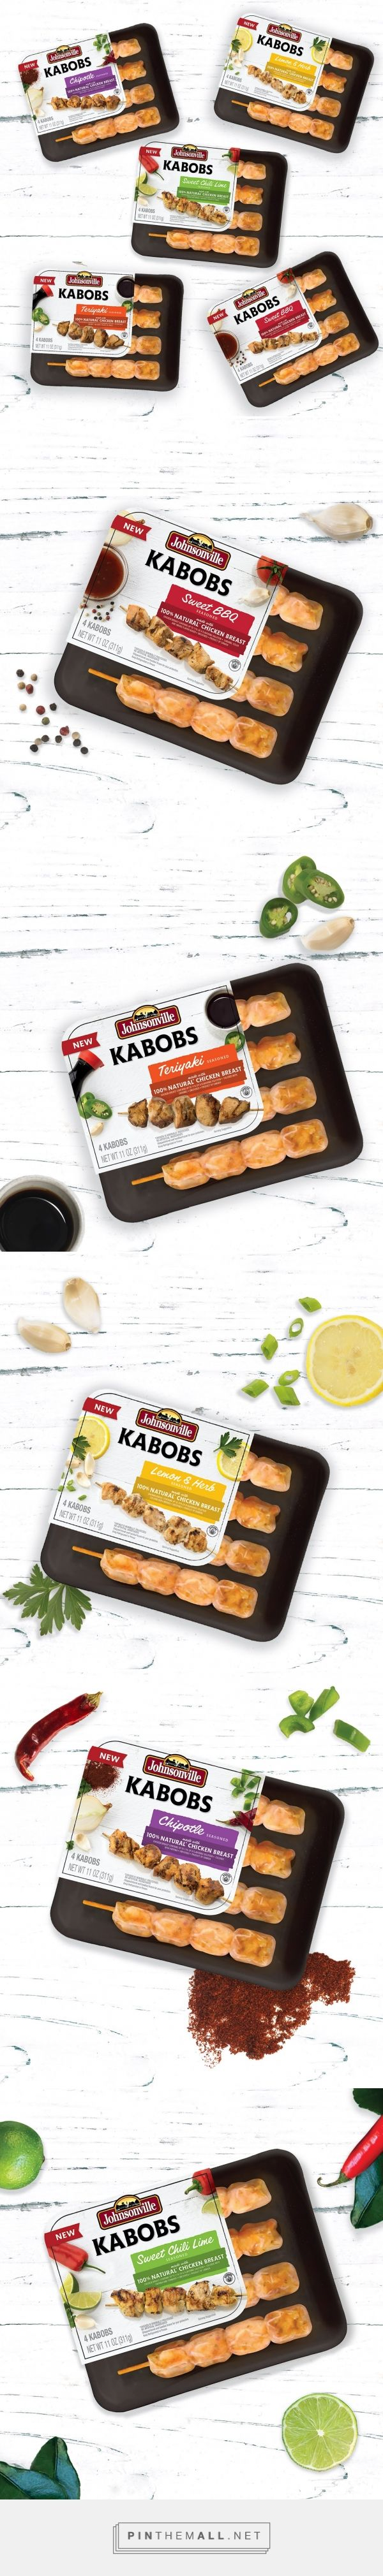 Johnsonville Kabobs - Packaging of the World - Creative Package Design Gallery - http://www.packagingoftheworld.com/2016/07/johnsonville-kabobs.html